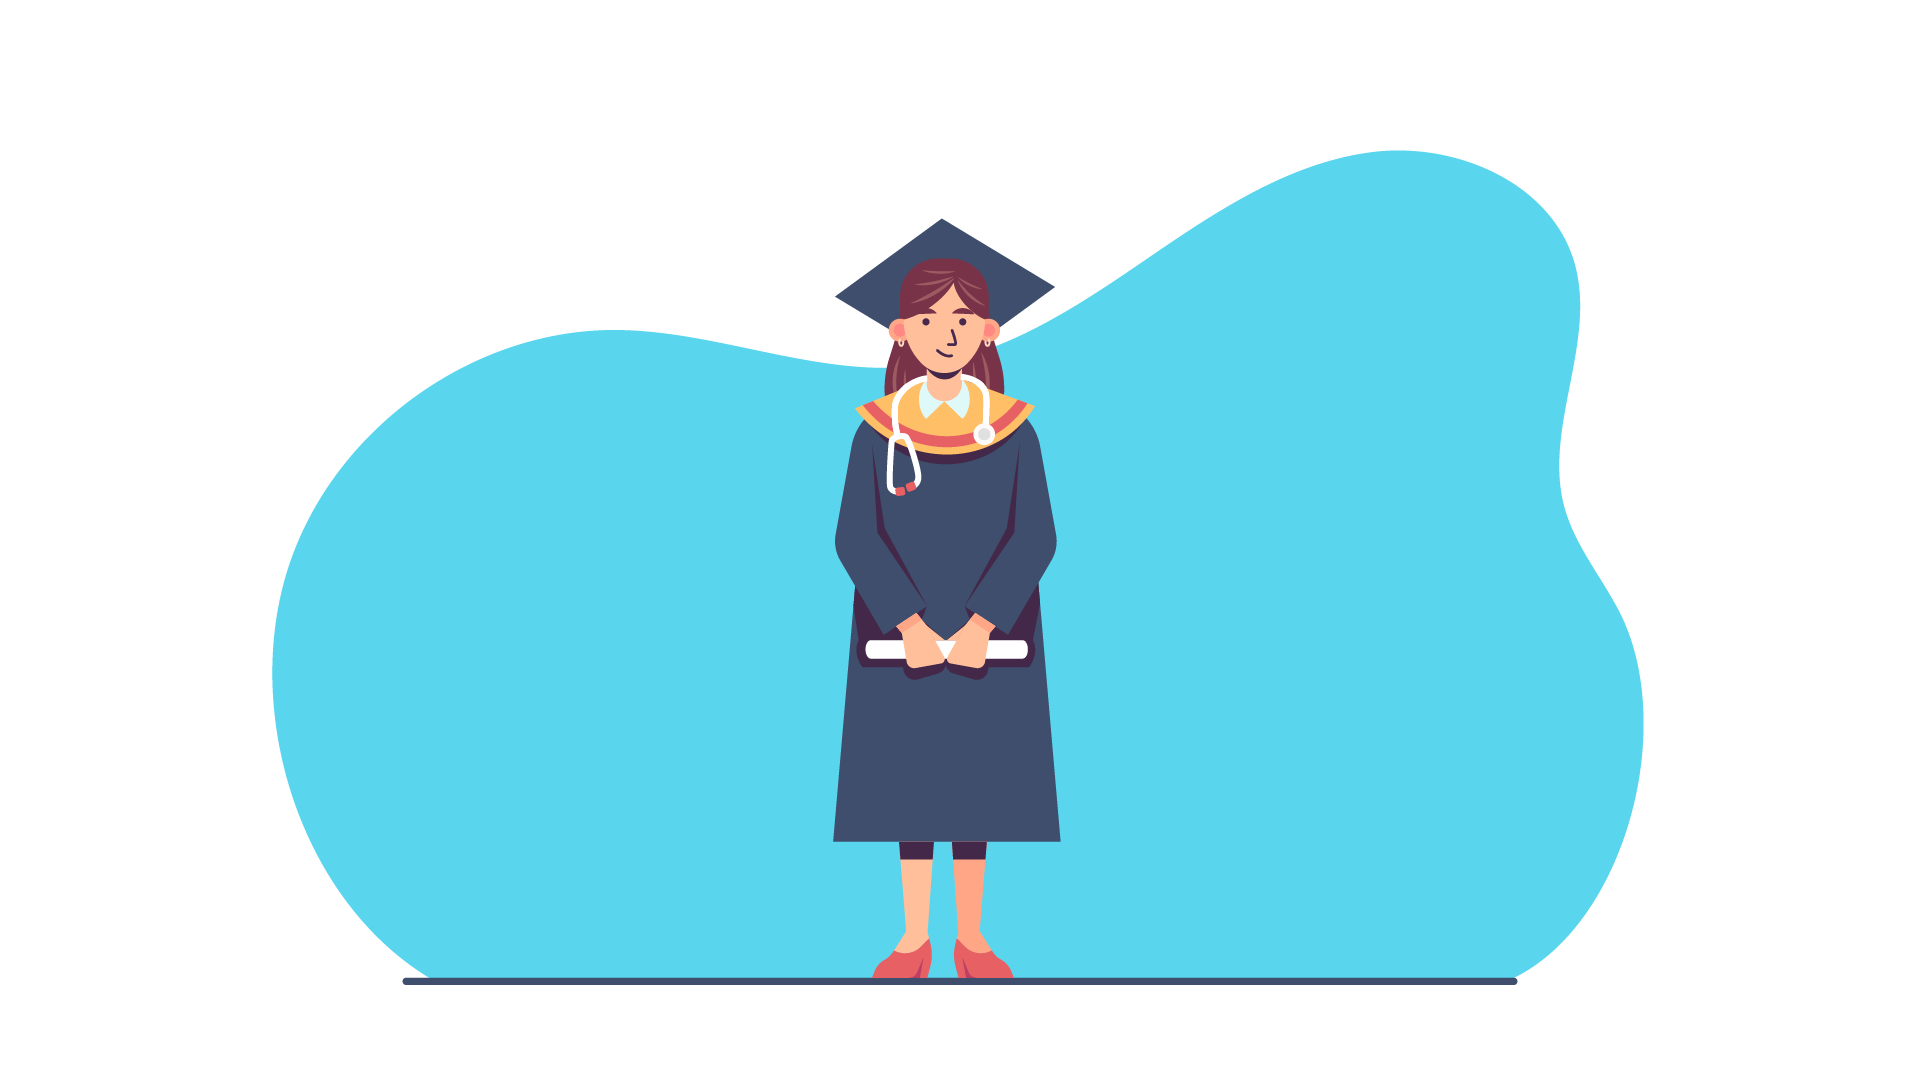 cartoon nurse wearing graduation cap and gown holding a diploma